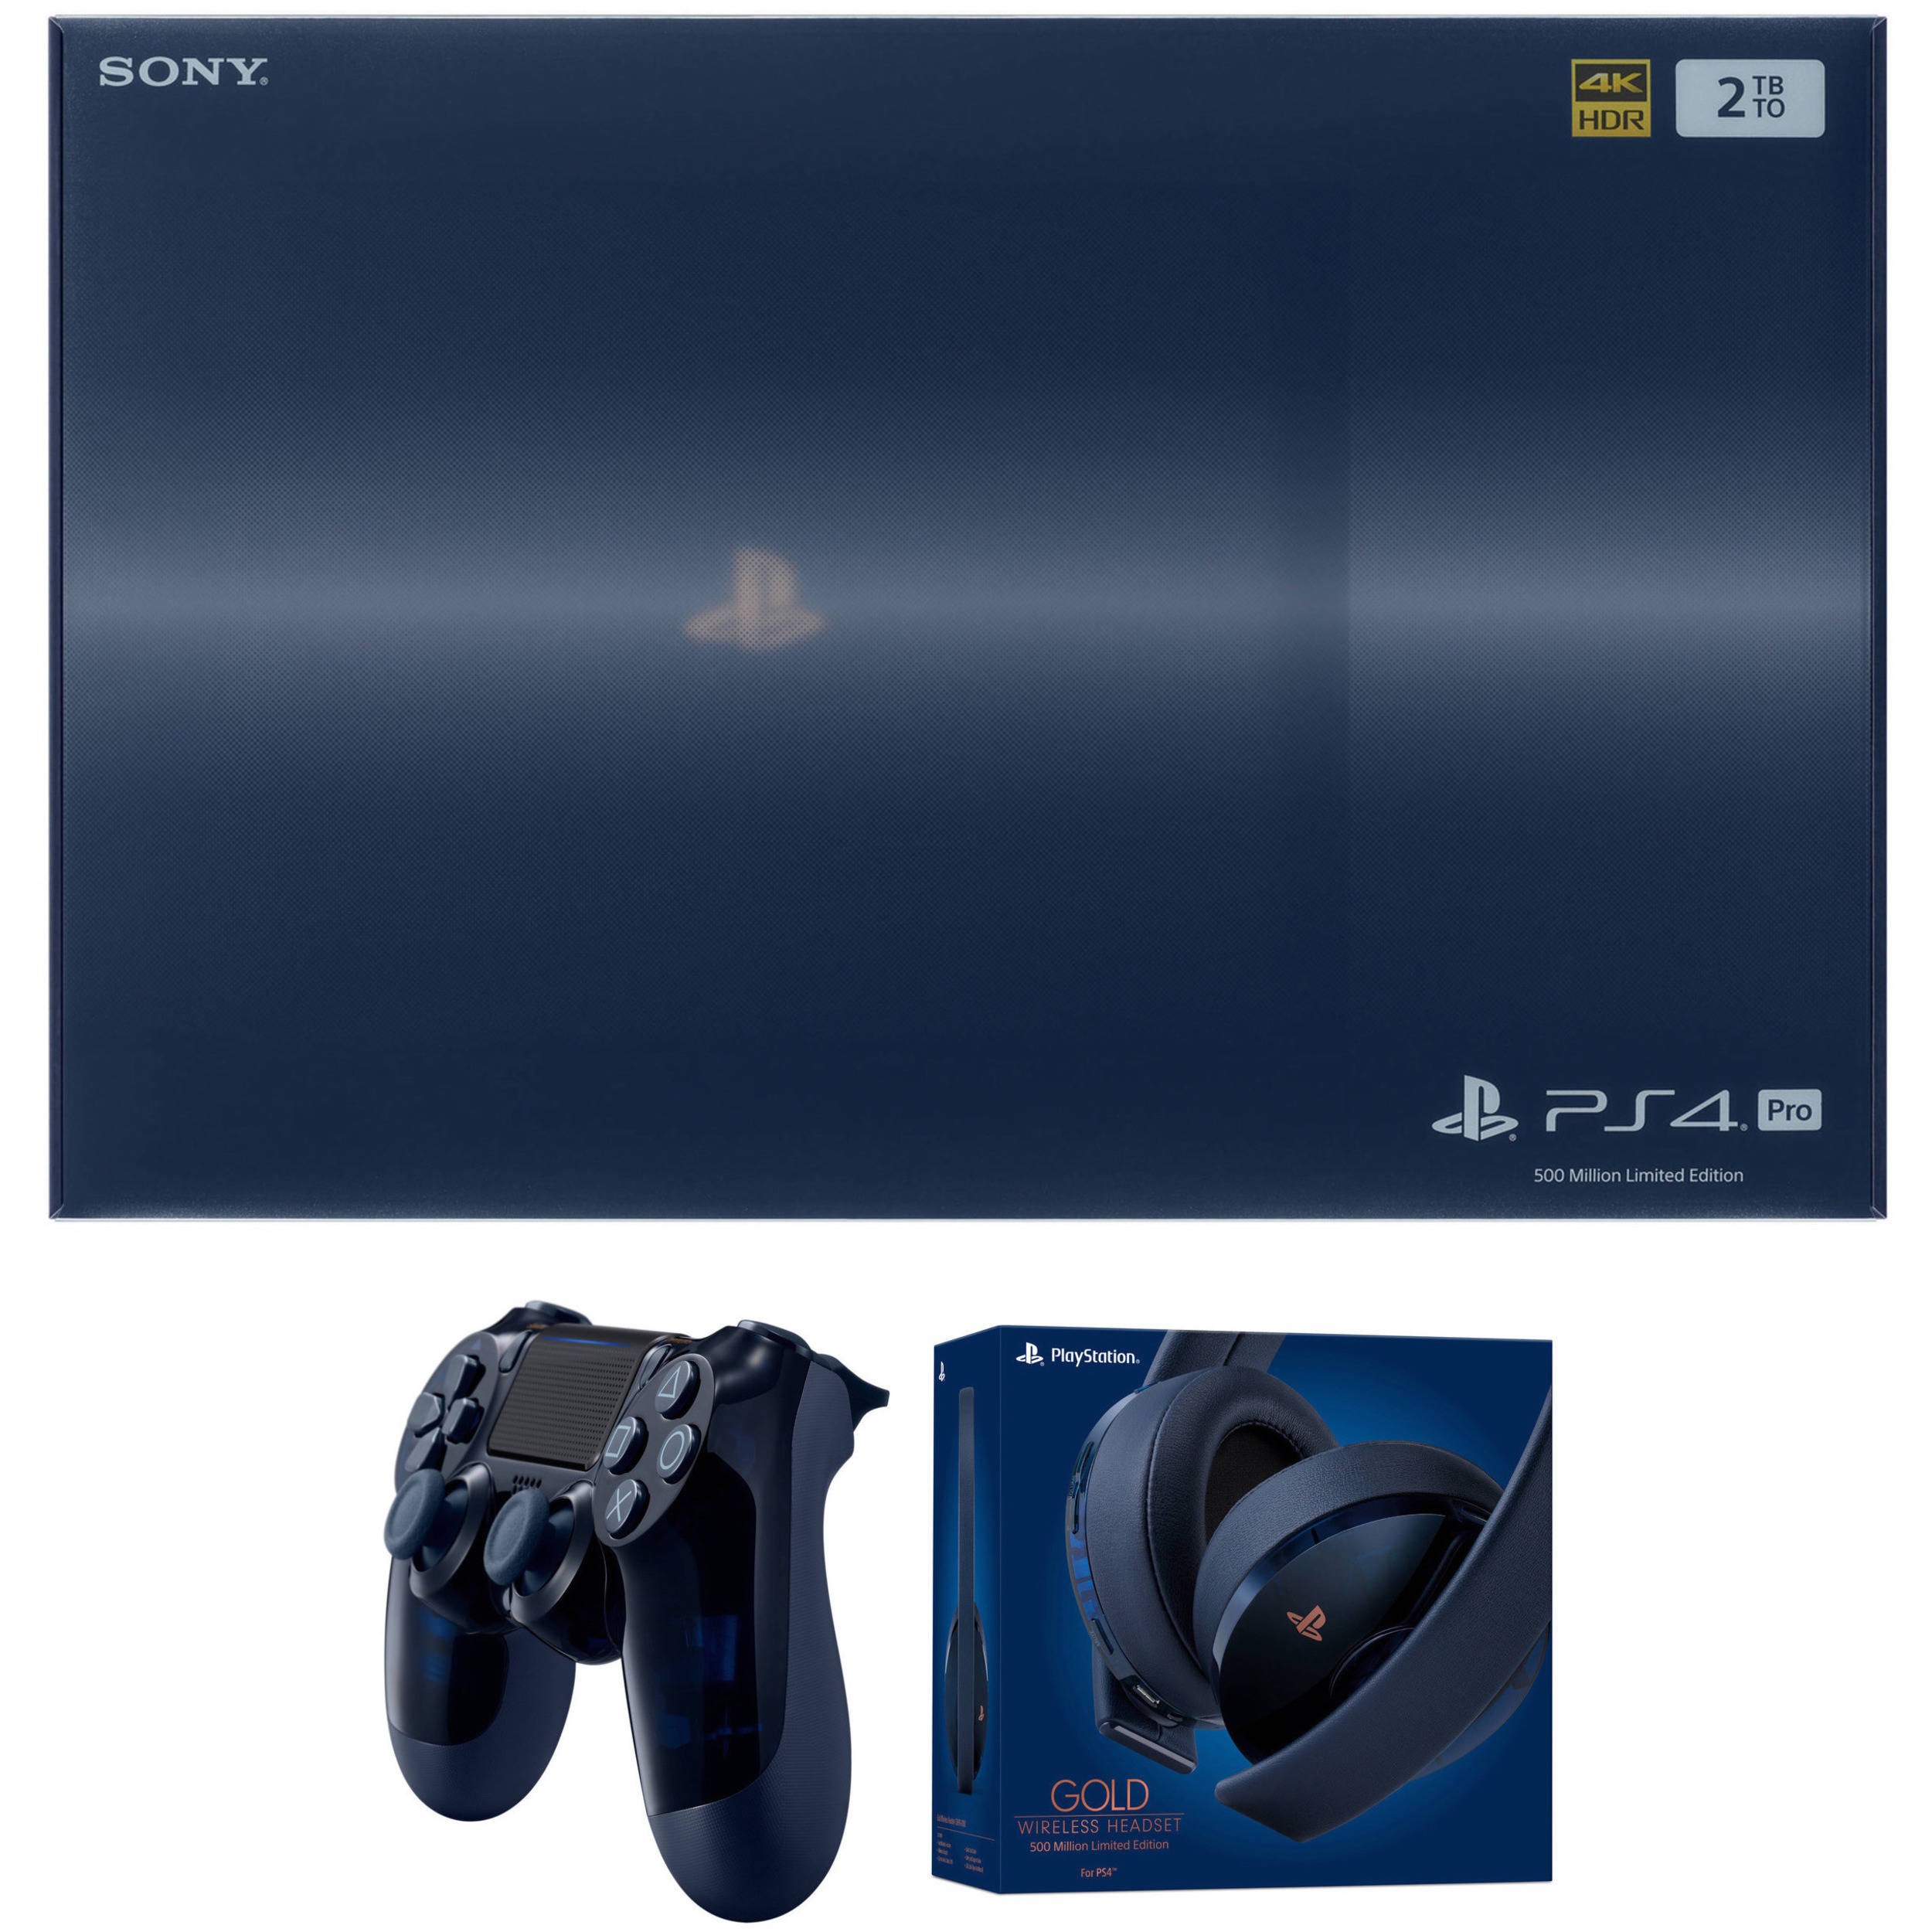 playstation 4 pro 2tb 500 million limited edition console nz